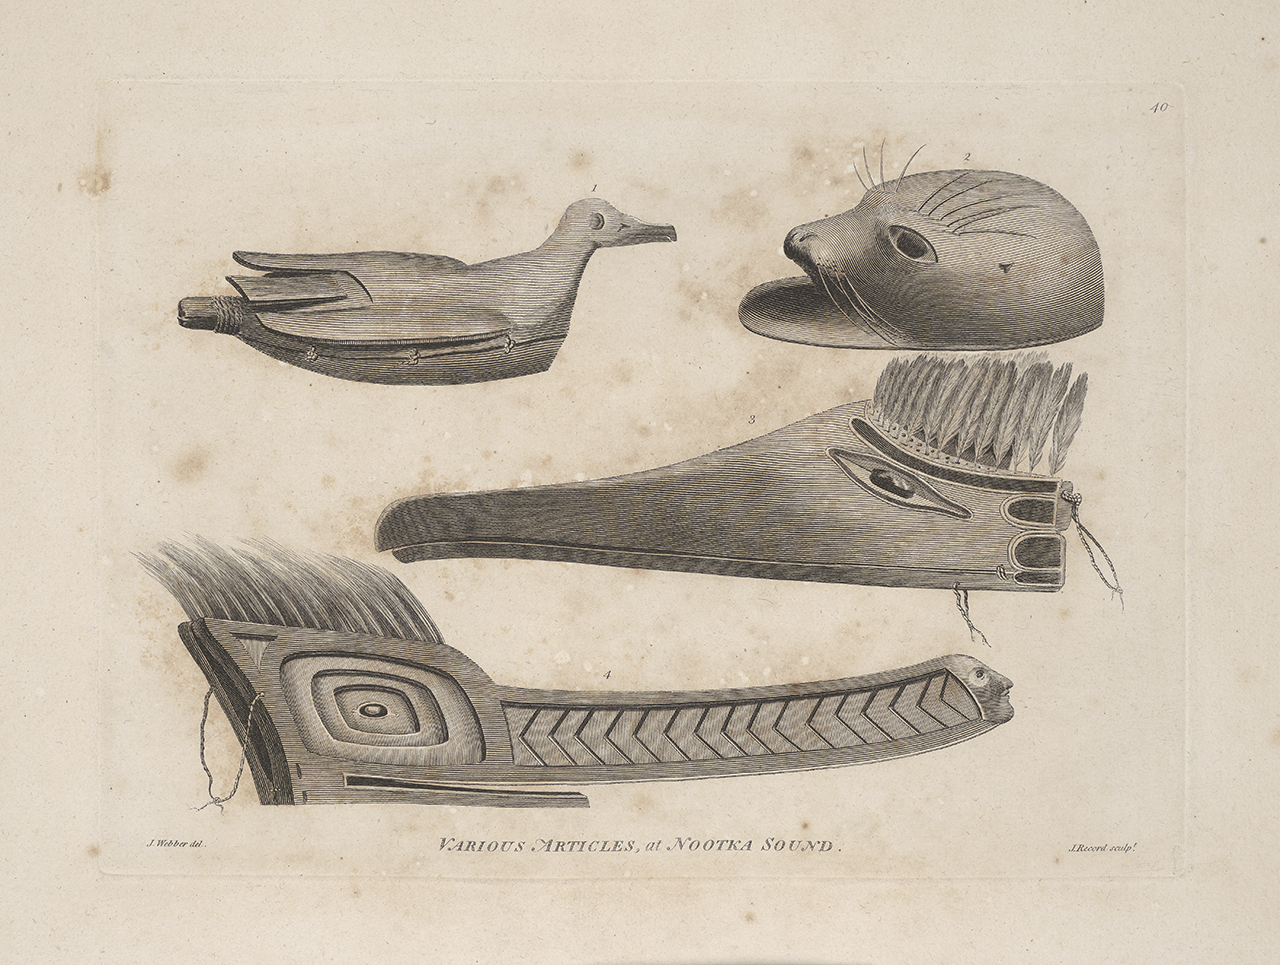 Print showing Objects at Nootka Sound with representations of animals that served as decoys. This shows two Nootkan wood bird masks, a bird rattle, and an Alaskan seal decoy helmet